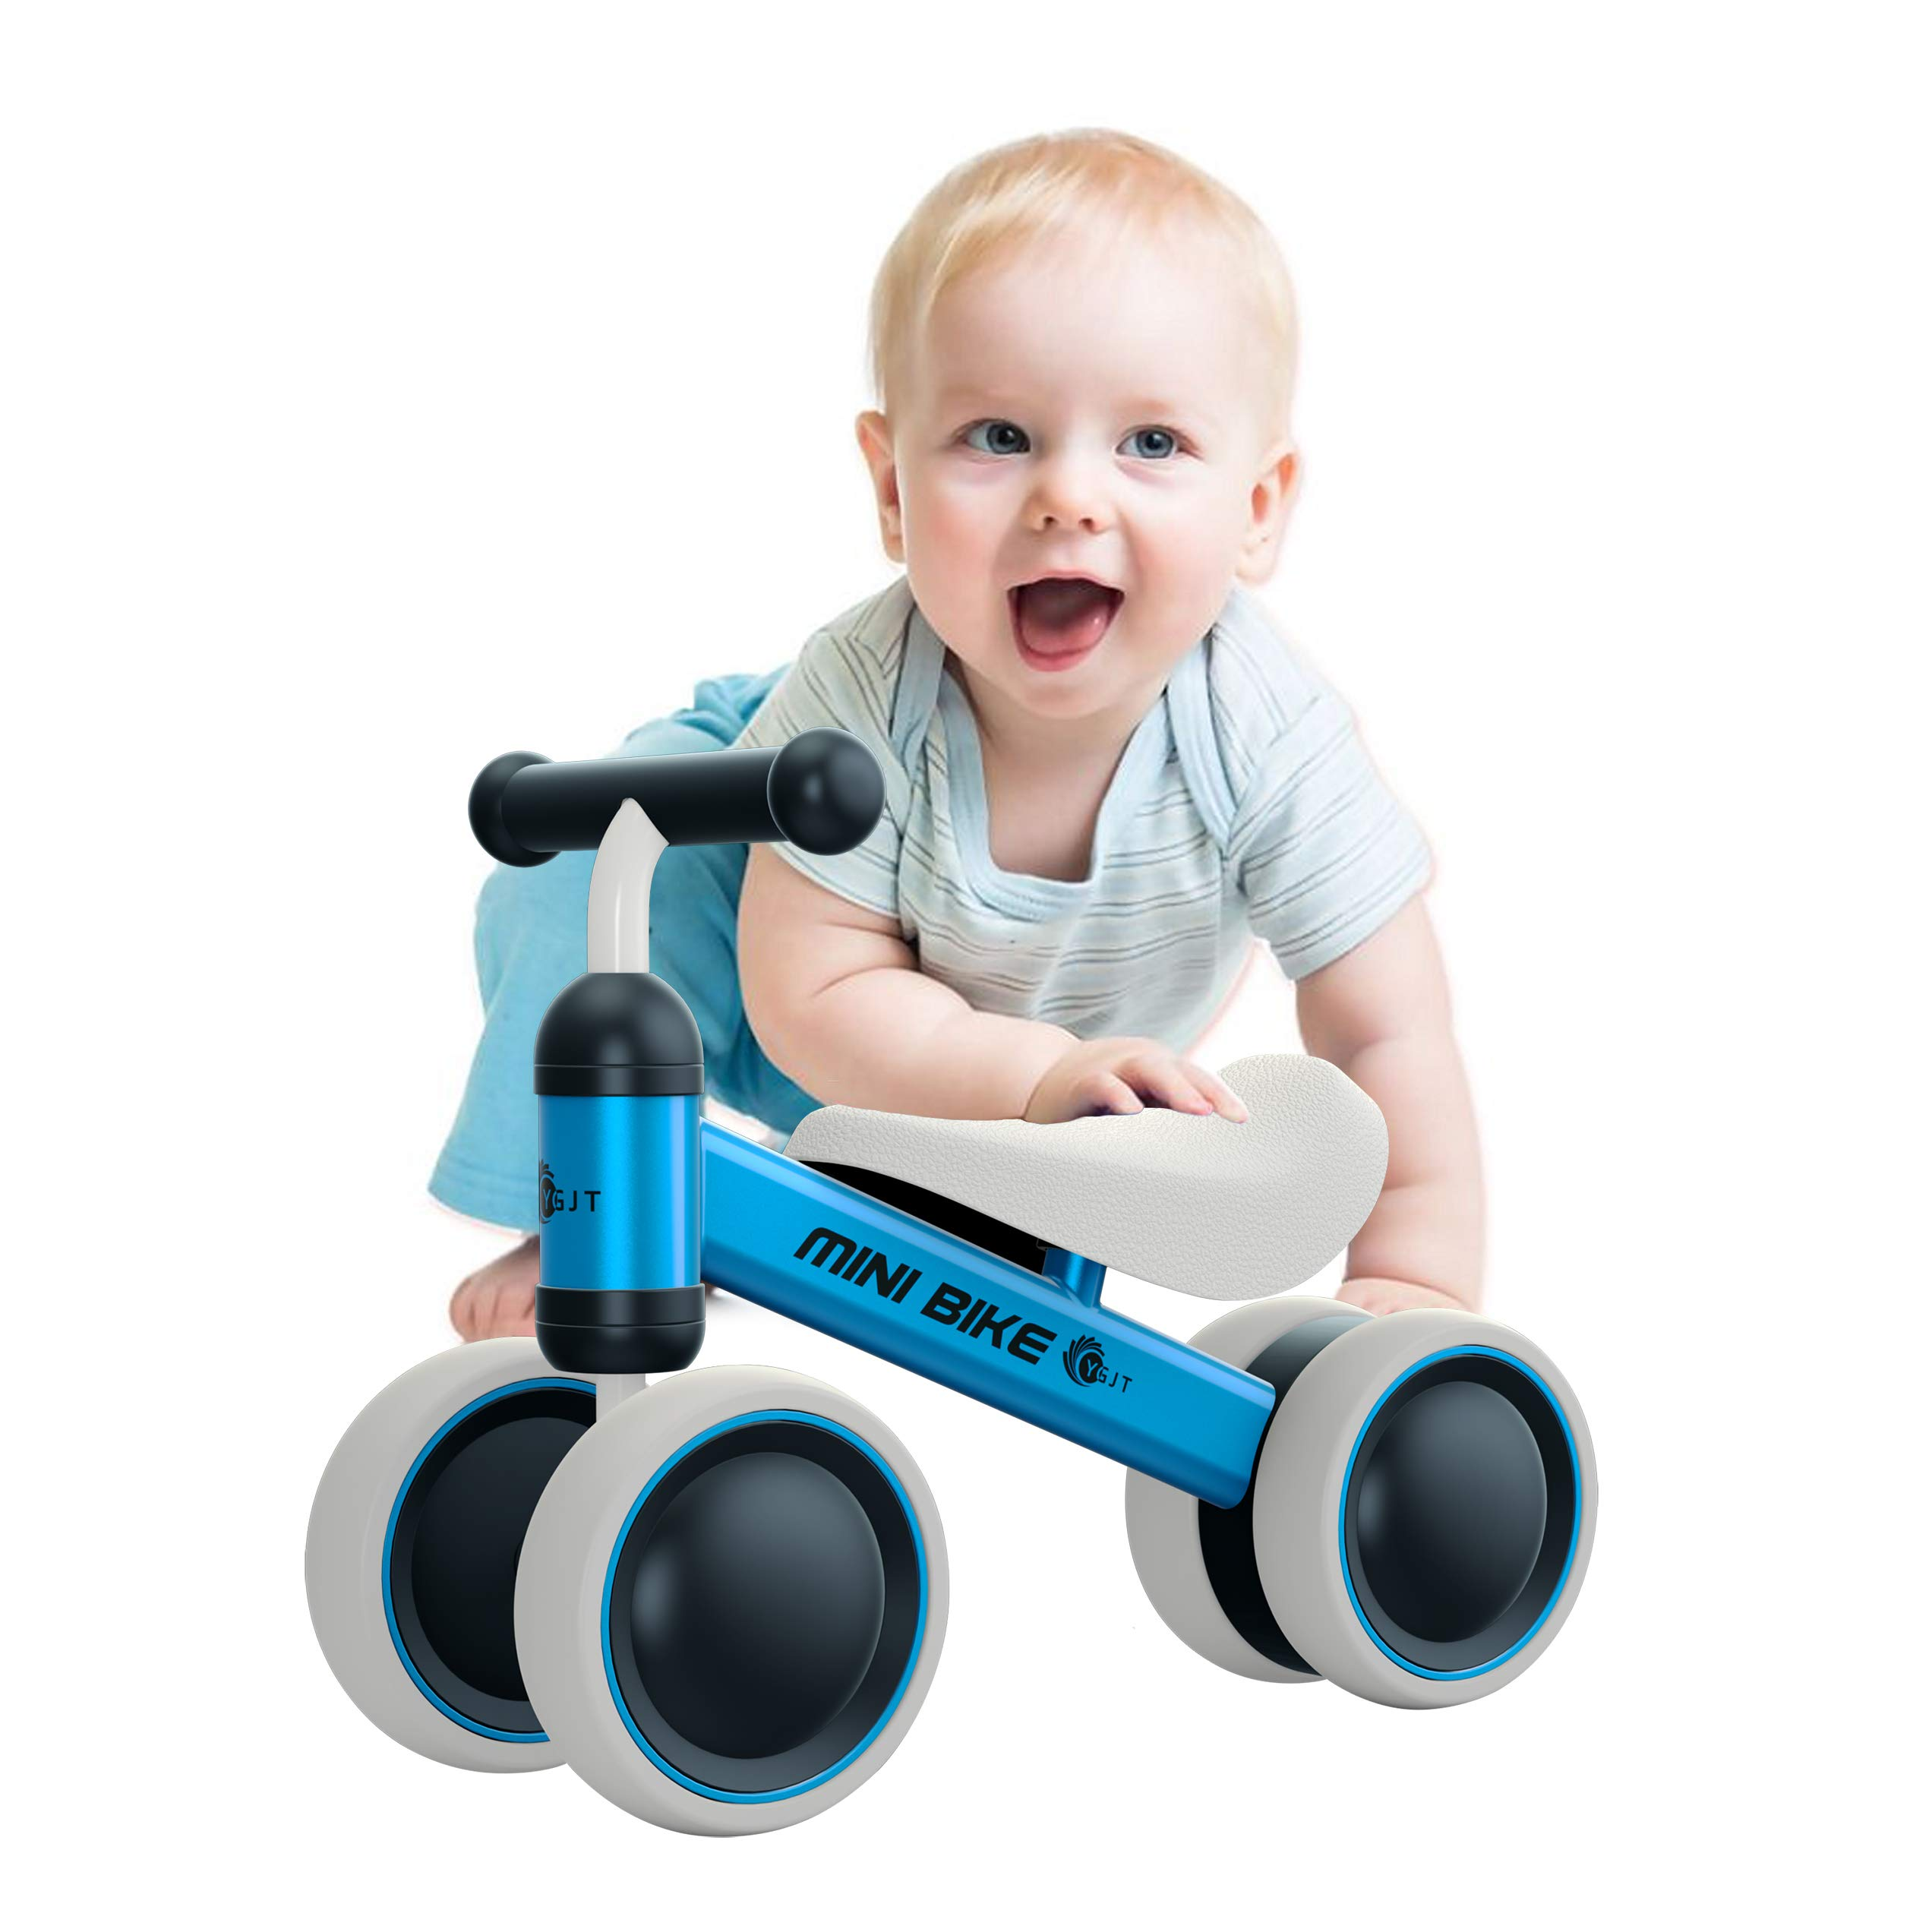 YGJT Baby Balance Bikes Bicycle Baby Walker Toys Rides for 1 Year Boys Girls 10 Months  sc 1 st  Amazon.com & Best Gifts 2 Year Old Boy: Amazon.com